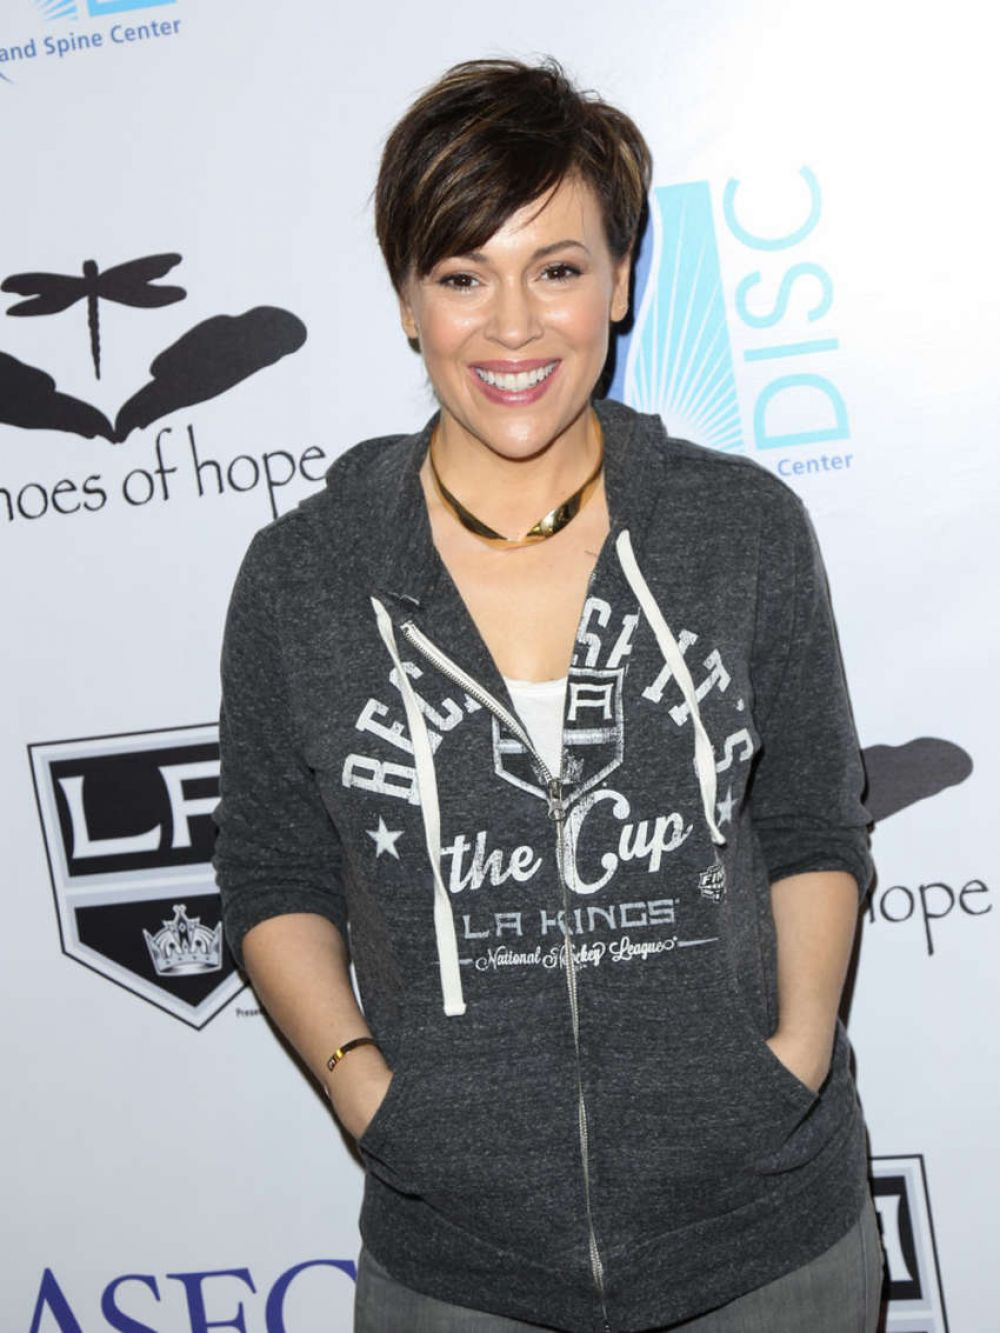 ALYSSA MILANO at Luc Robitaille Celebrity Ahootout in El Segundo 03/20/2016